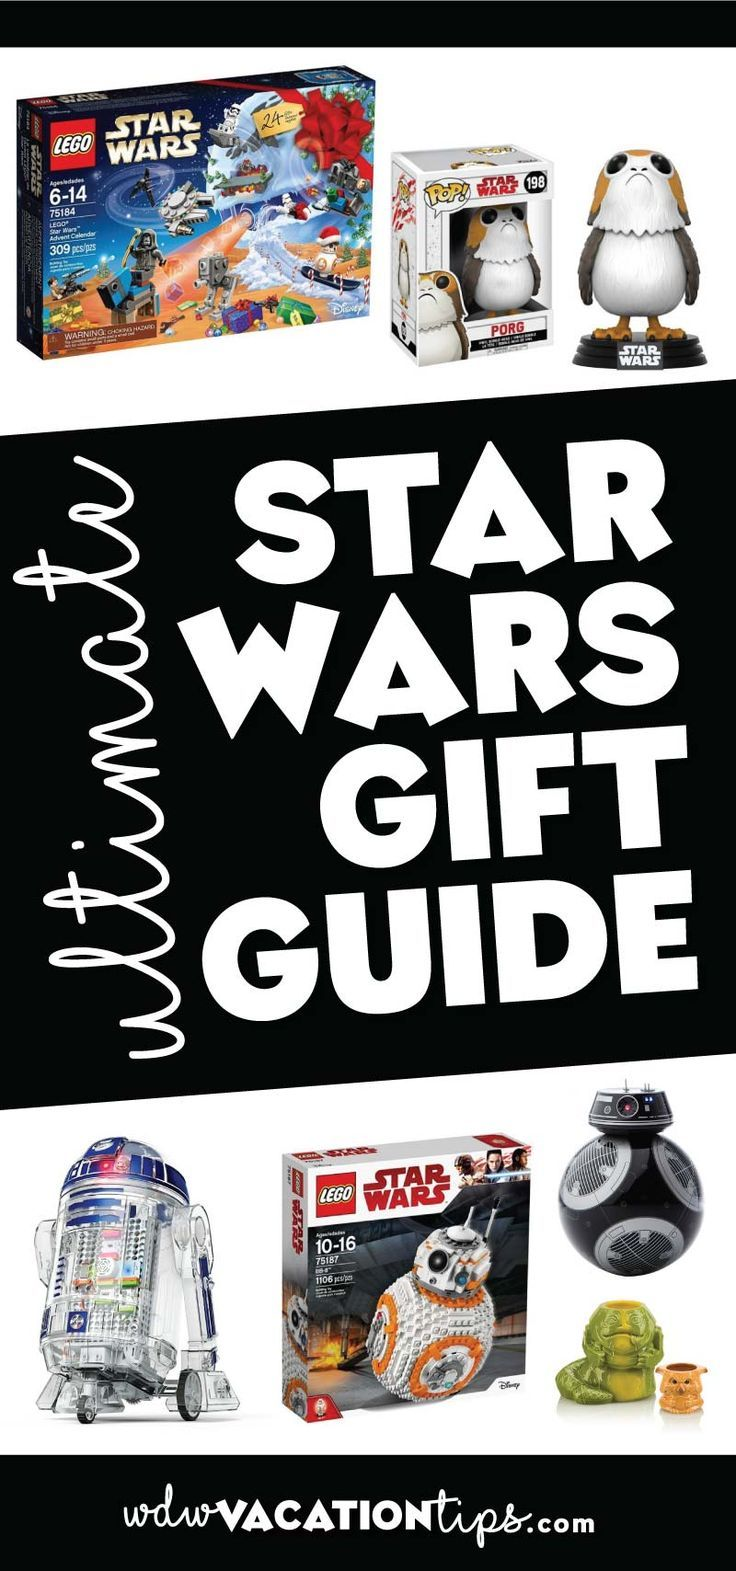 Star wars fan gift ideas star wars gifts fans and star solutioingenieria Images